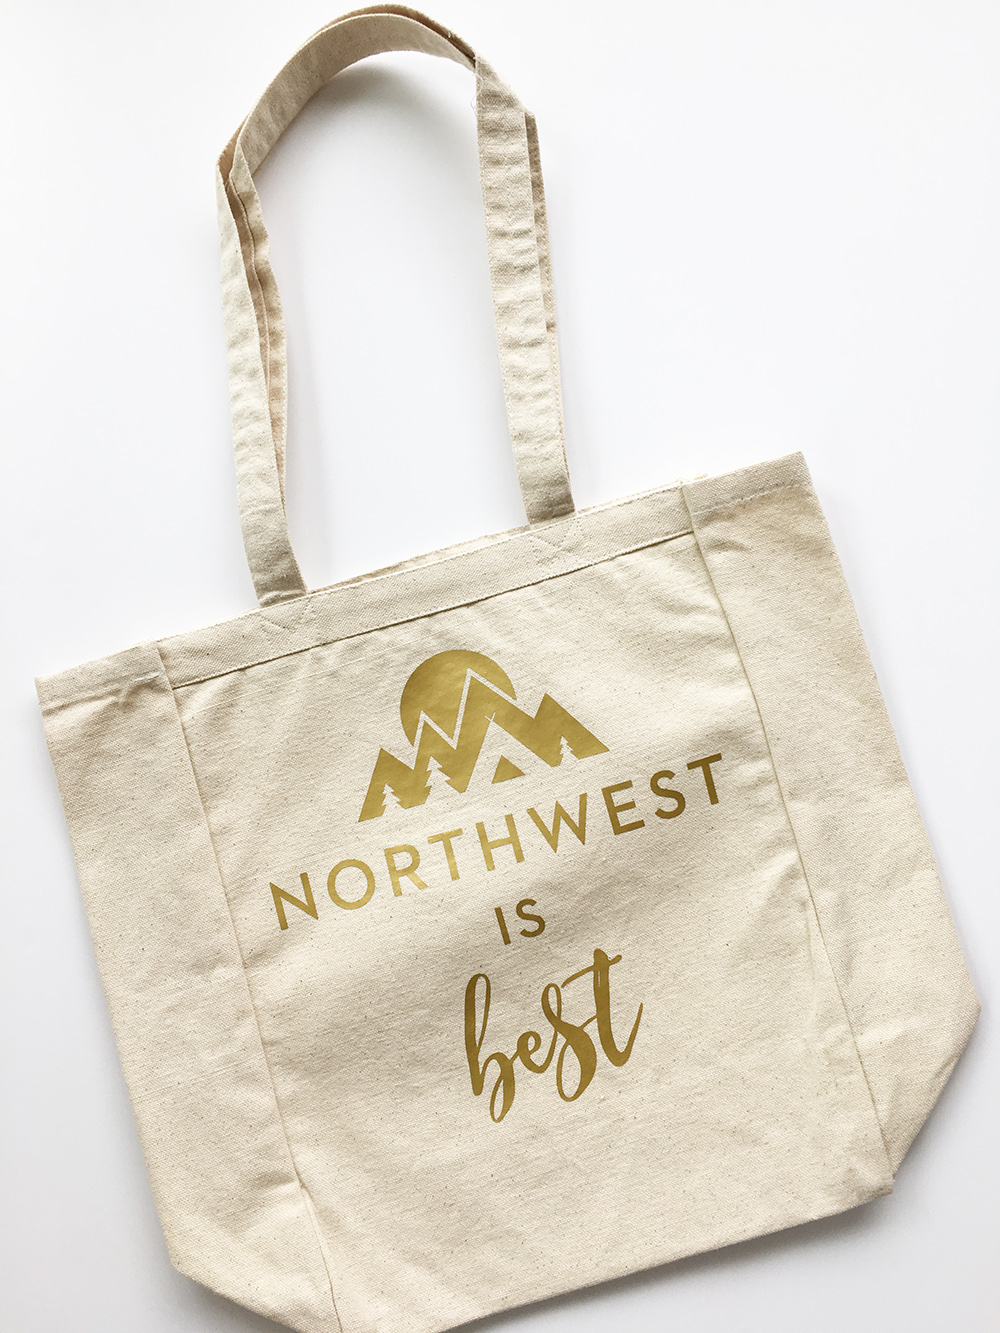 Northwest is Best Tote Bag